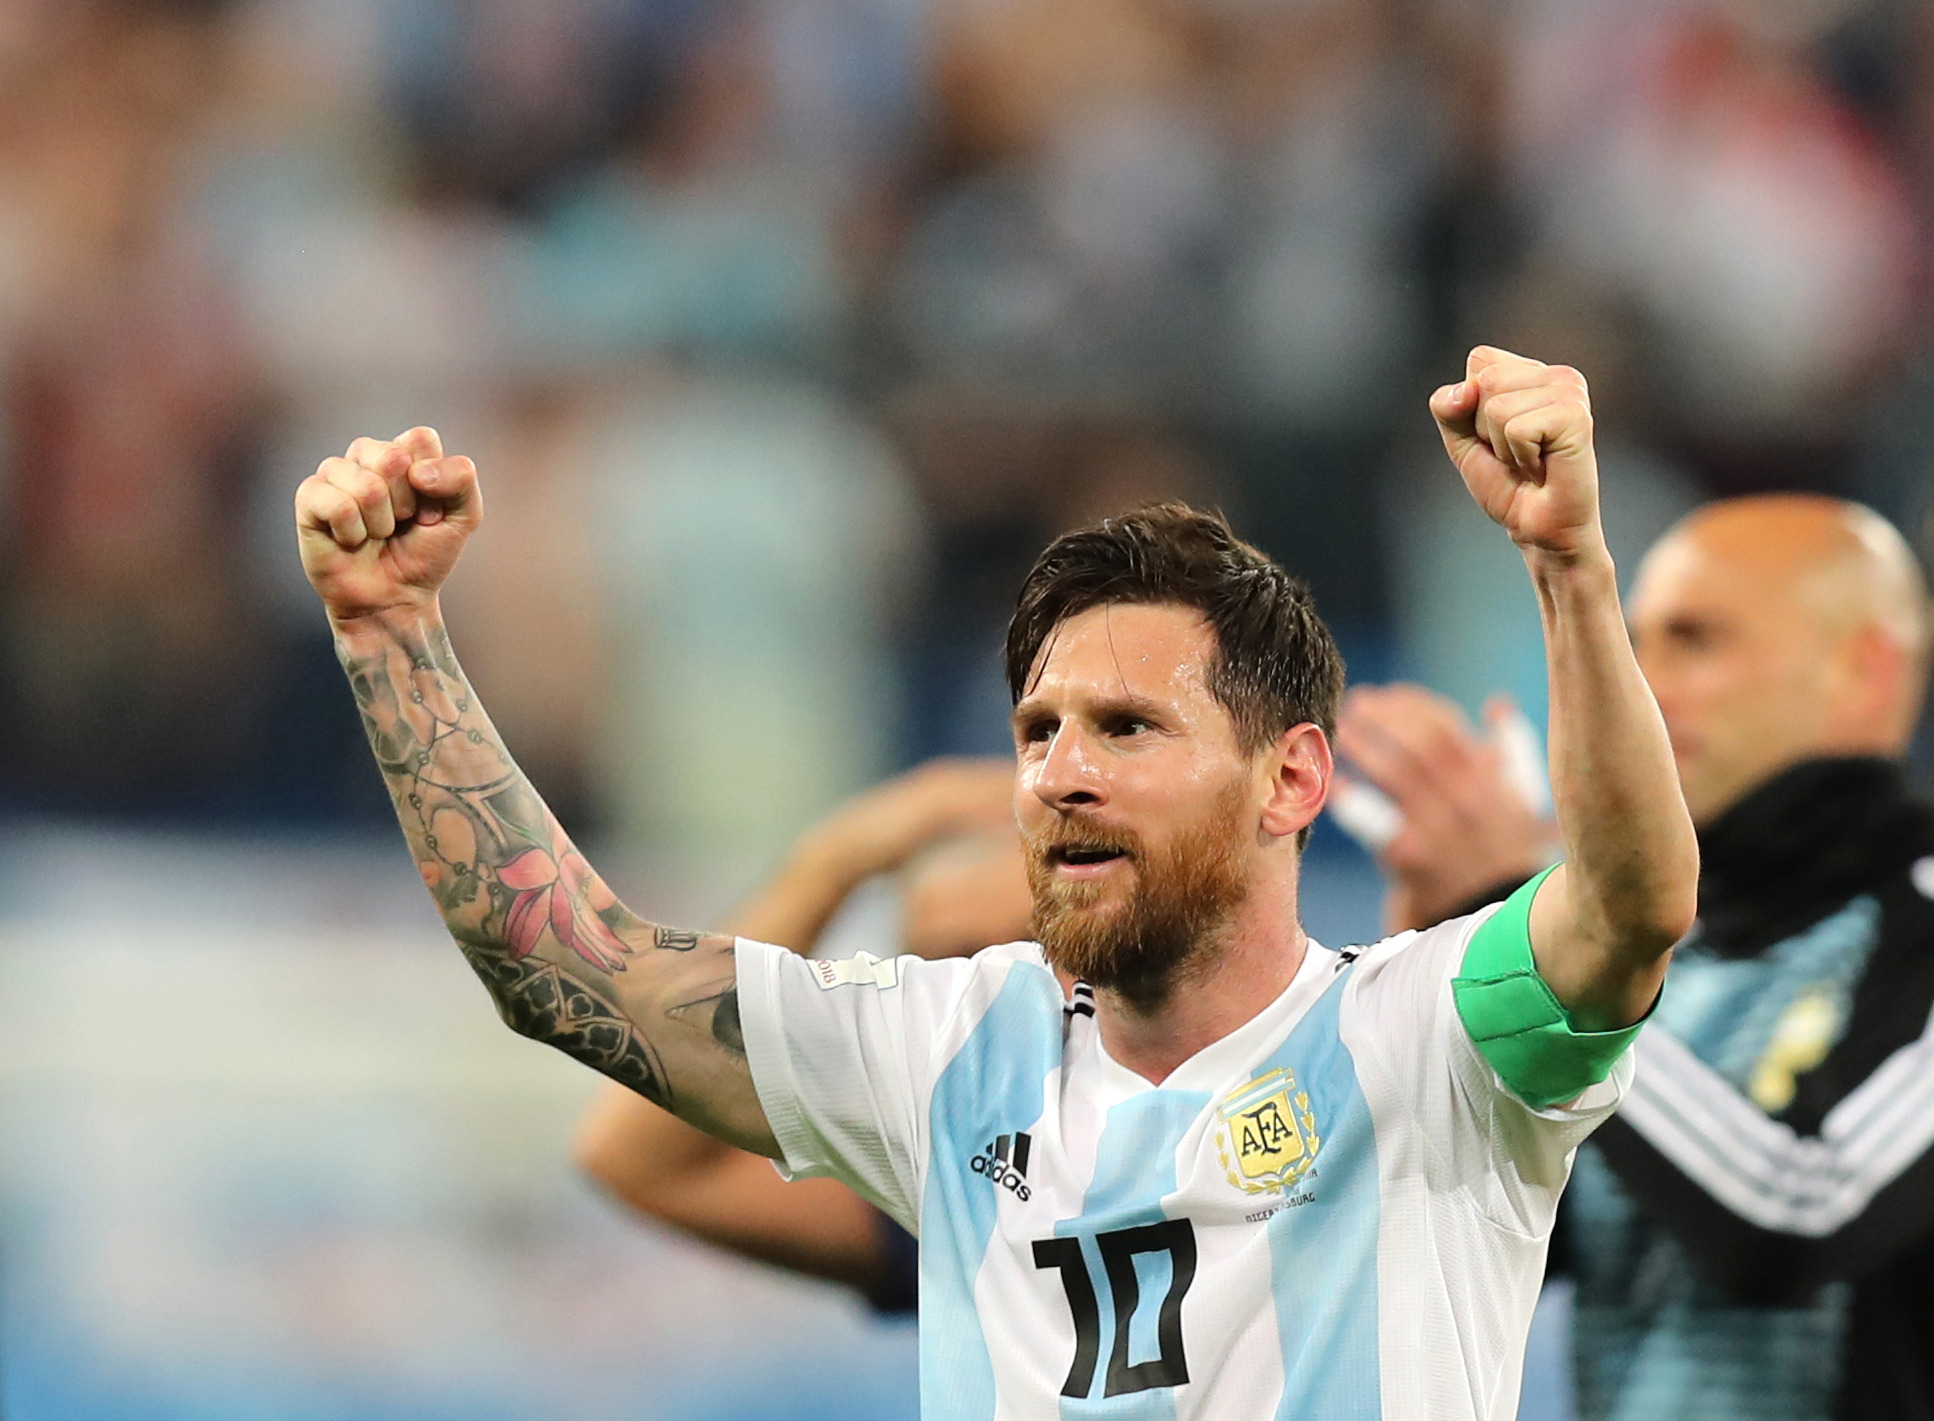 Messi's in a Mess, Doesn't Seem to Fit into the Argentina Collective